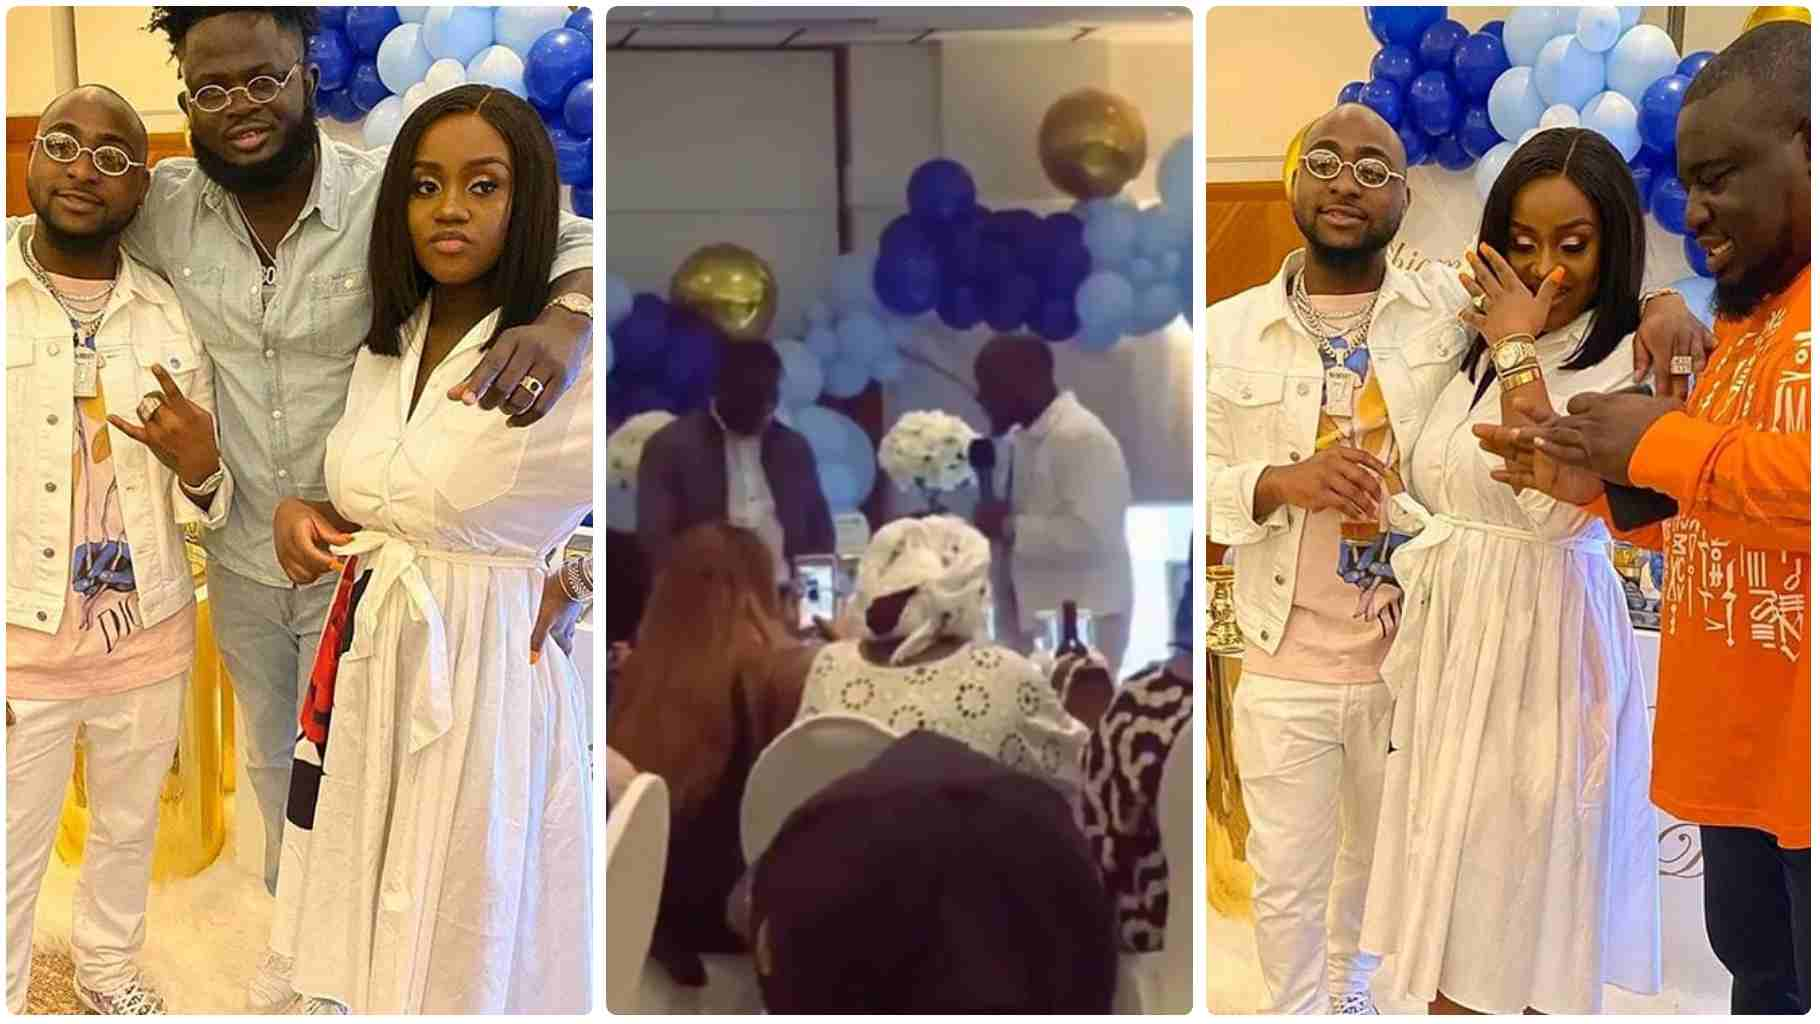 Watch: Naming ceremony of Davido and Chioma's newborn son David Jnr. Ifeanyi Adeleke